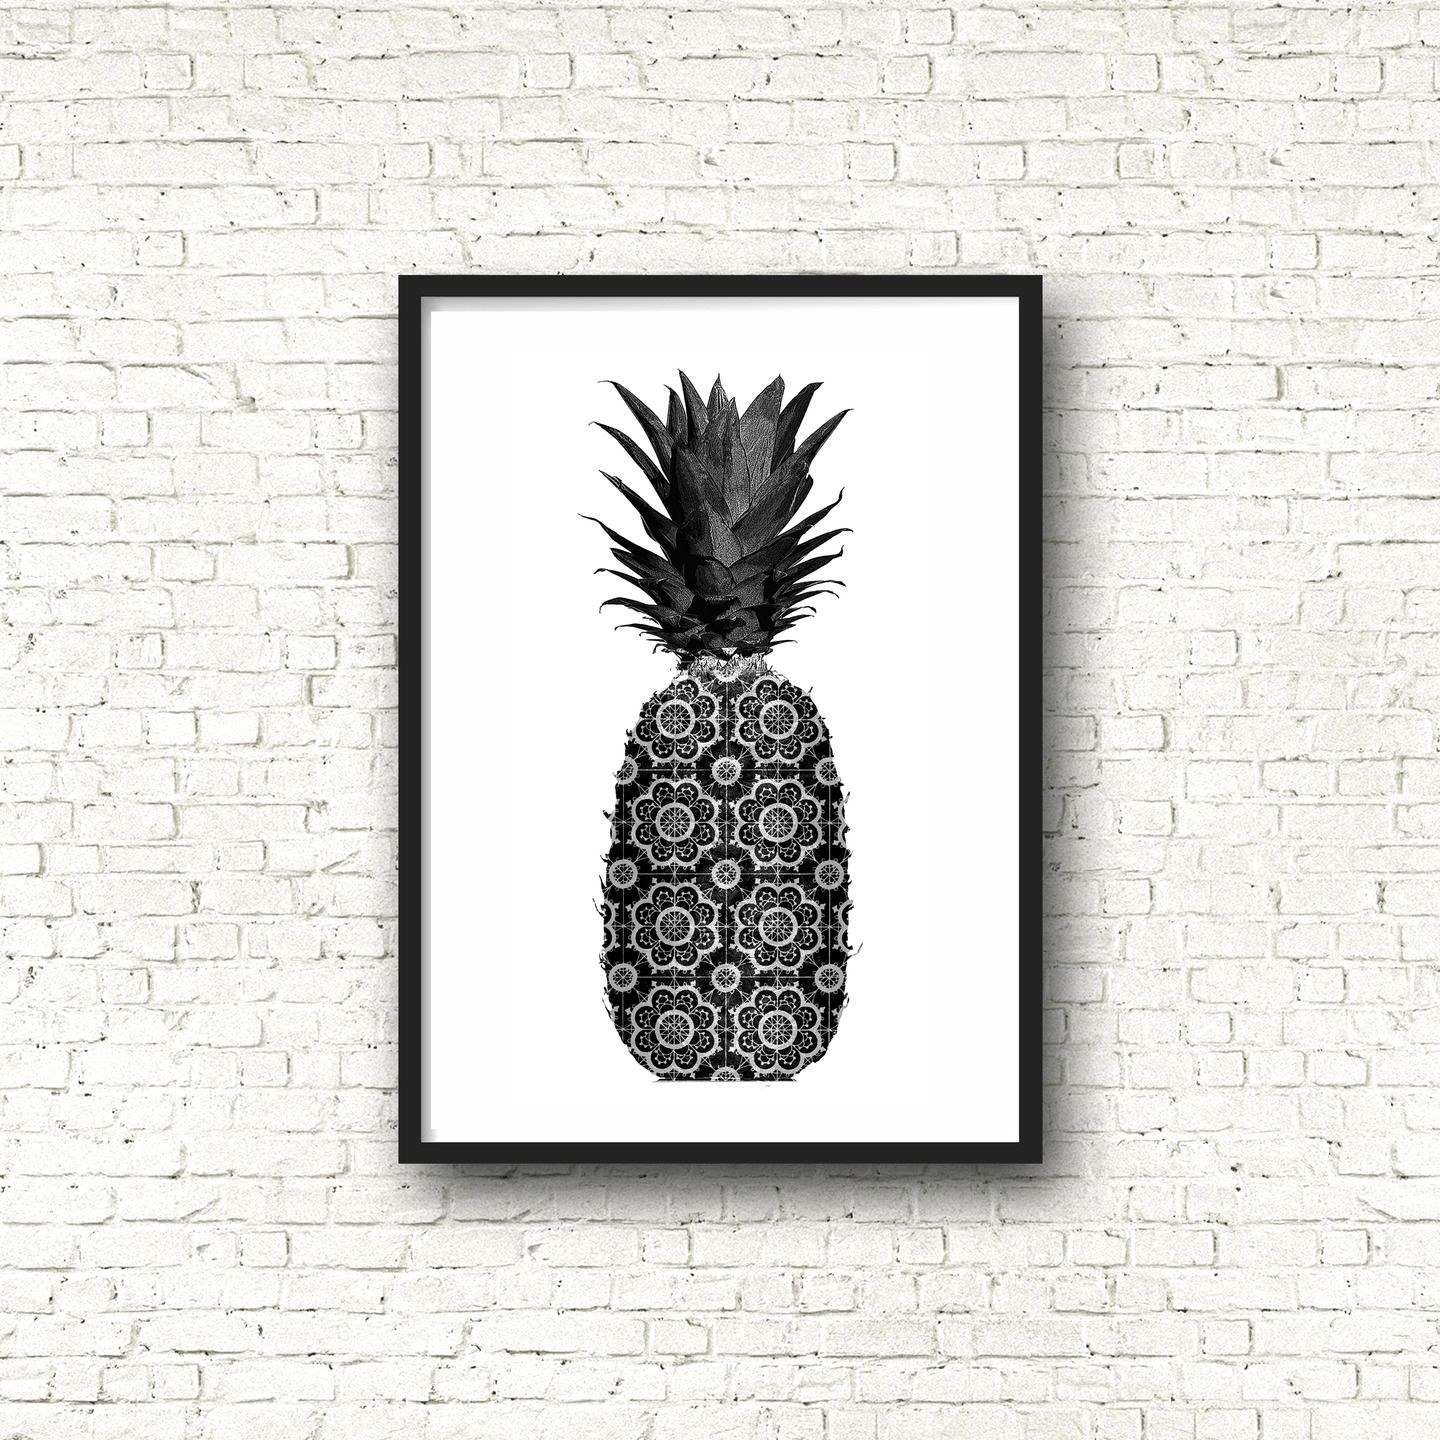 affiche poster noir et blanc graphique ananas format a4. Black Bedroom Furniture Sets. Home Design Ideas